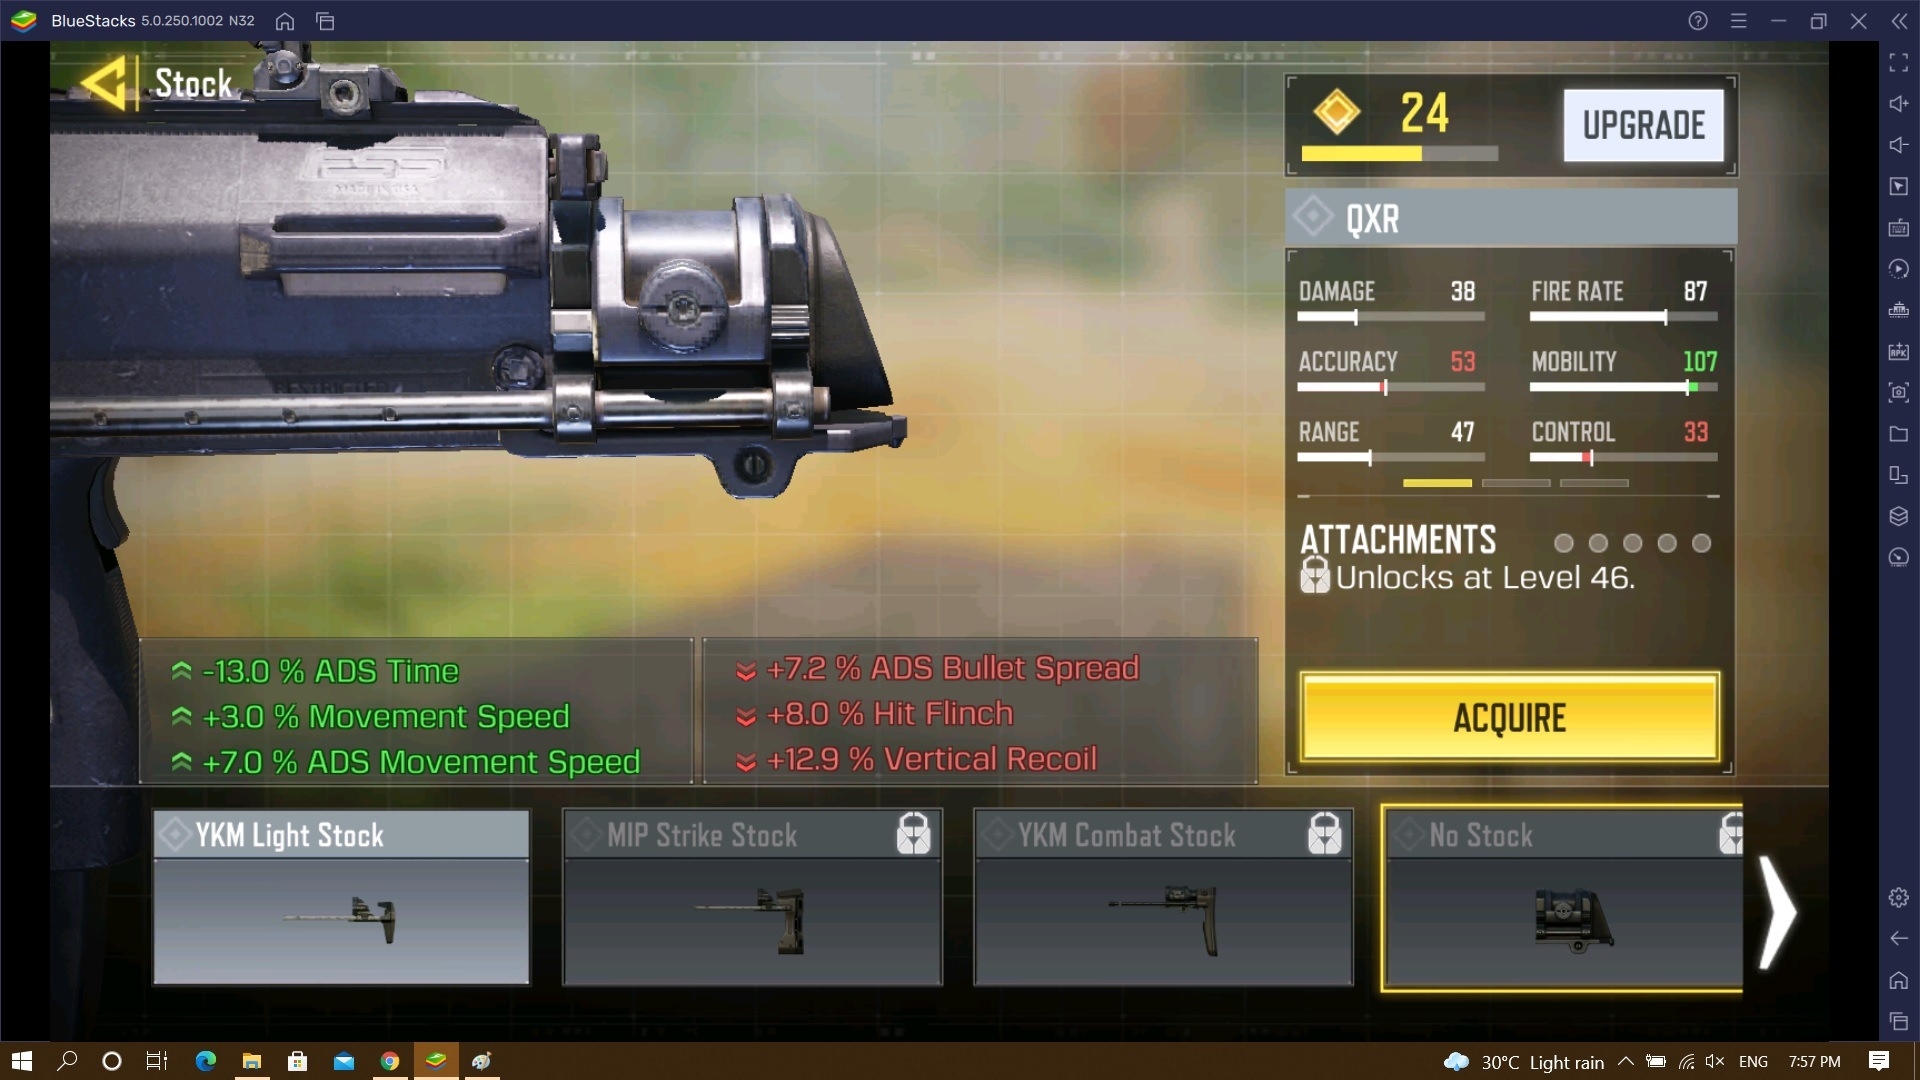 Call of Duty: Mobile Weapon Guide for QXR